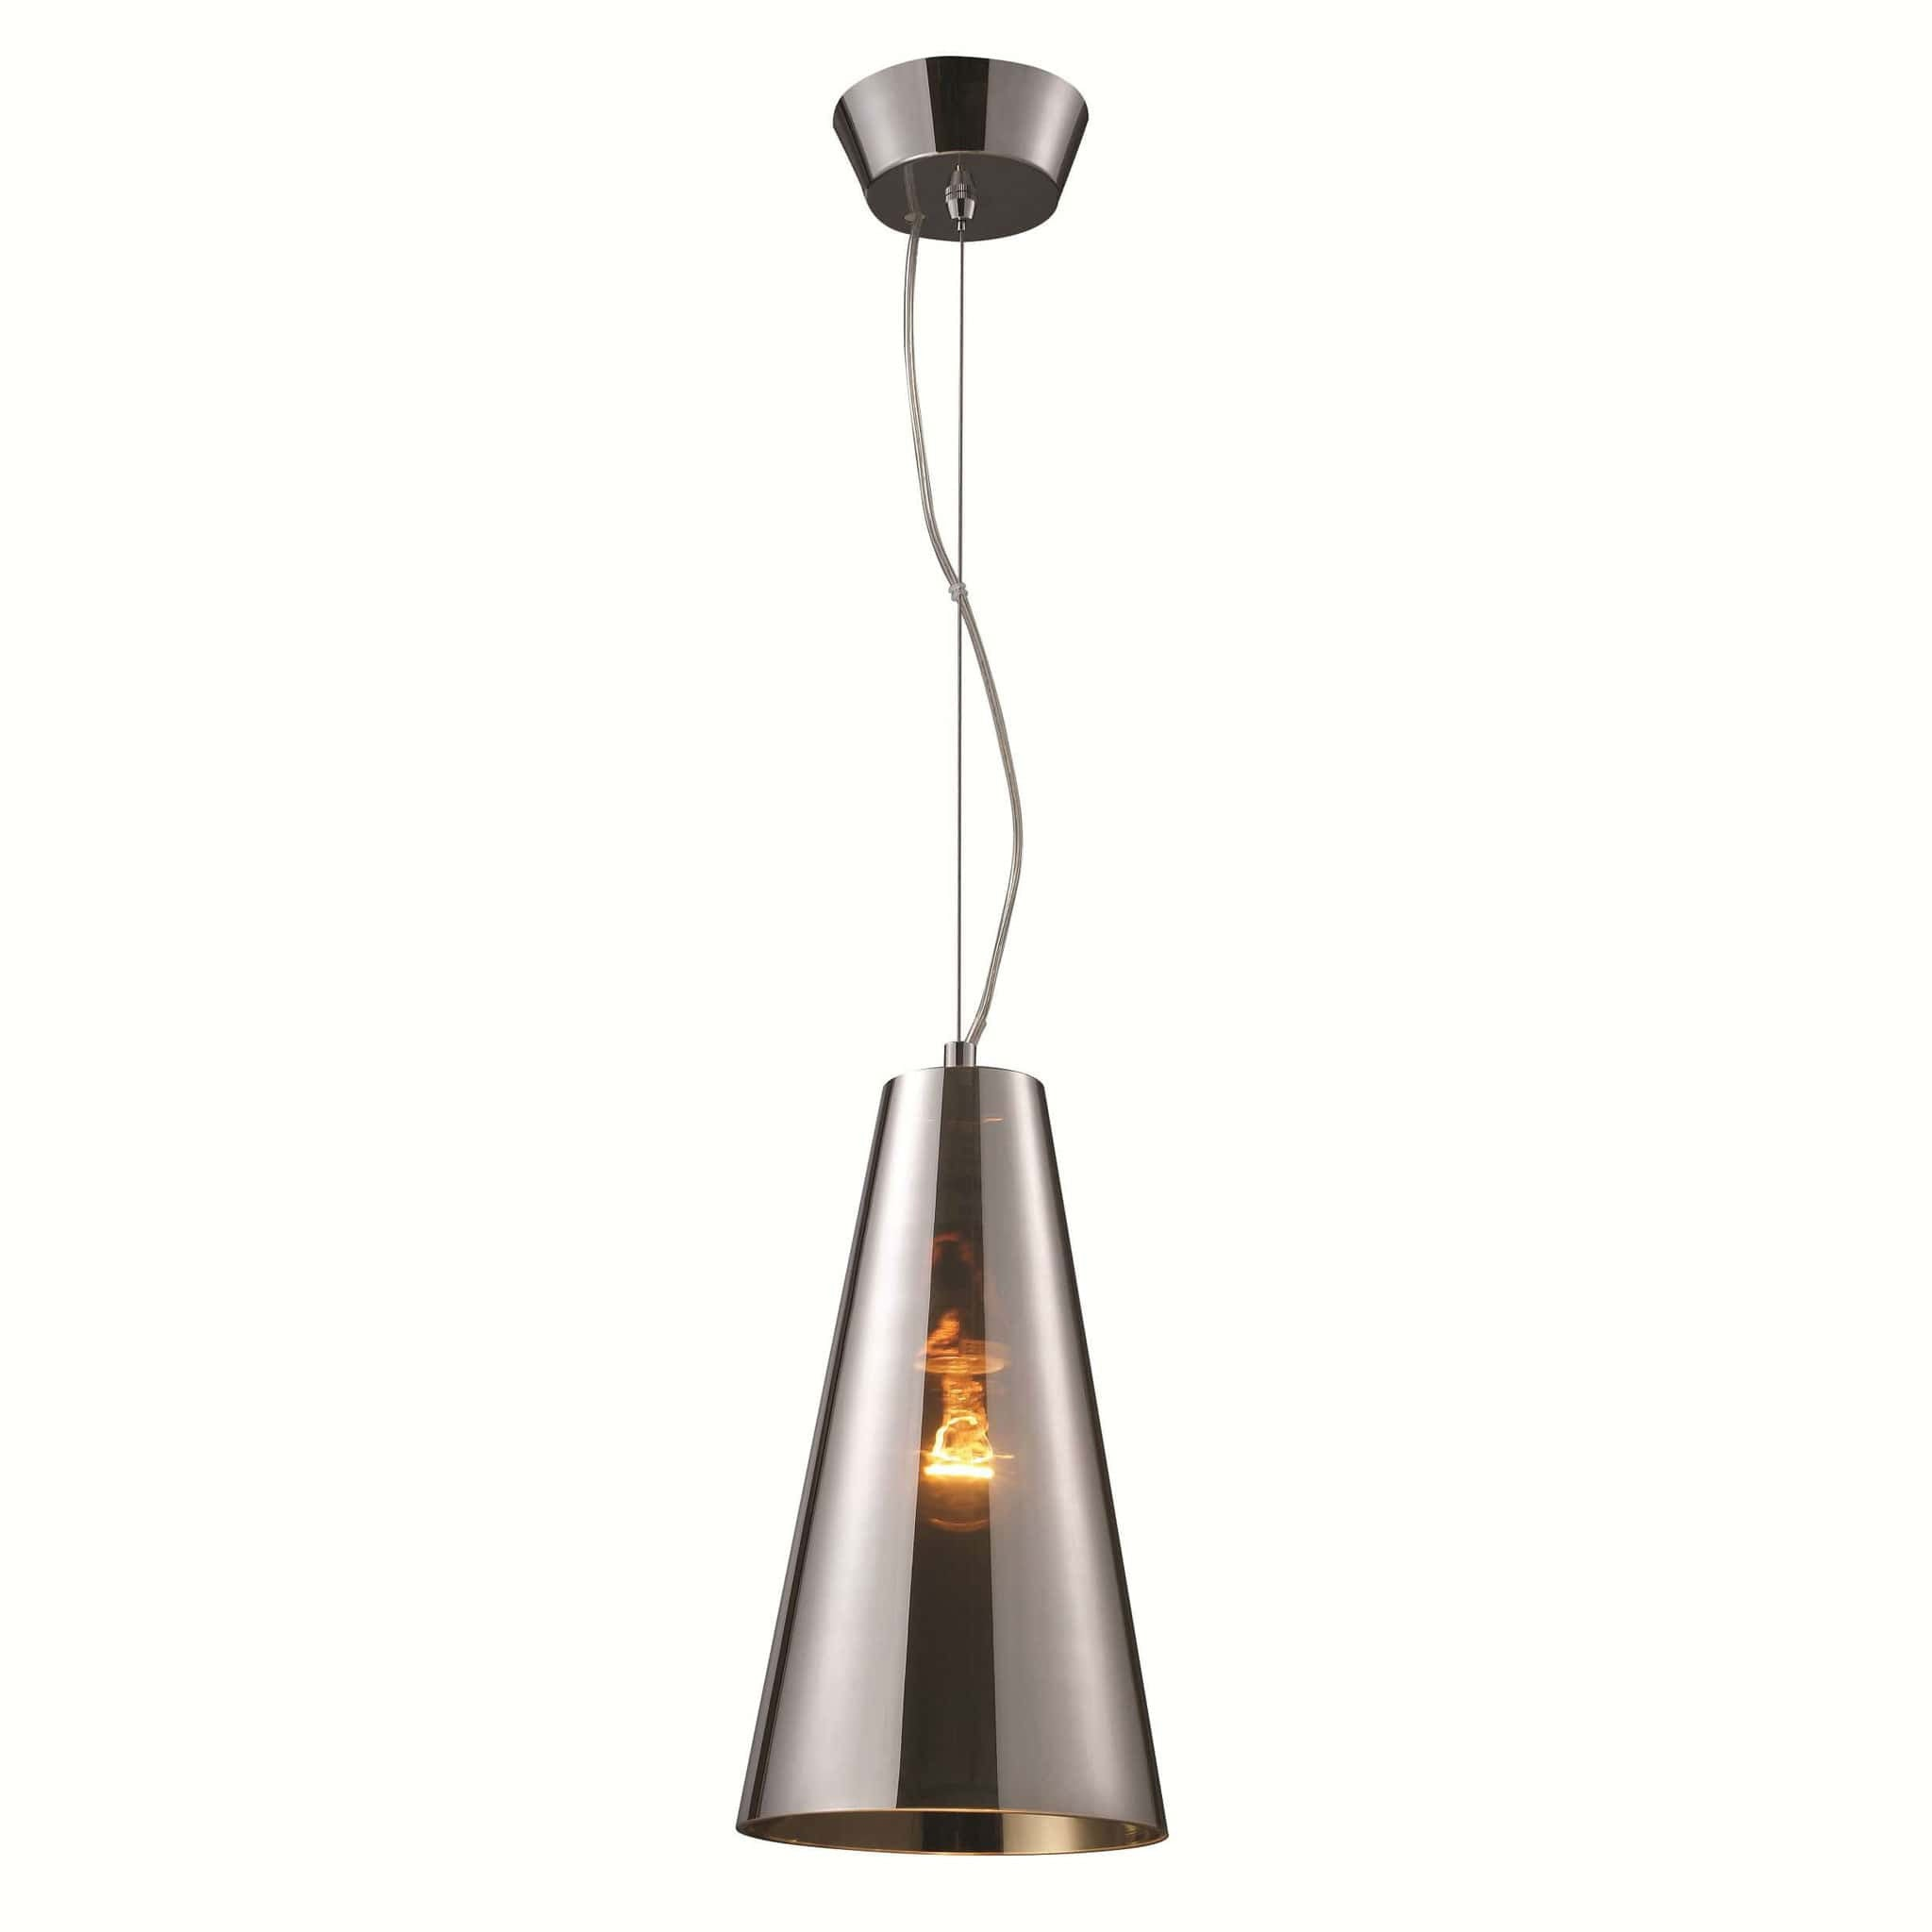 Azzardo Capo Silver Glass Chrome Conical Pendant Light AD 8083 1